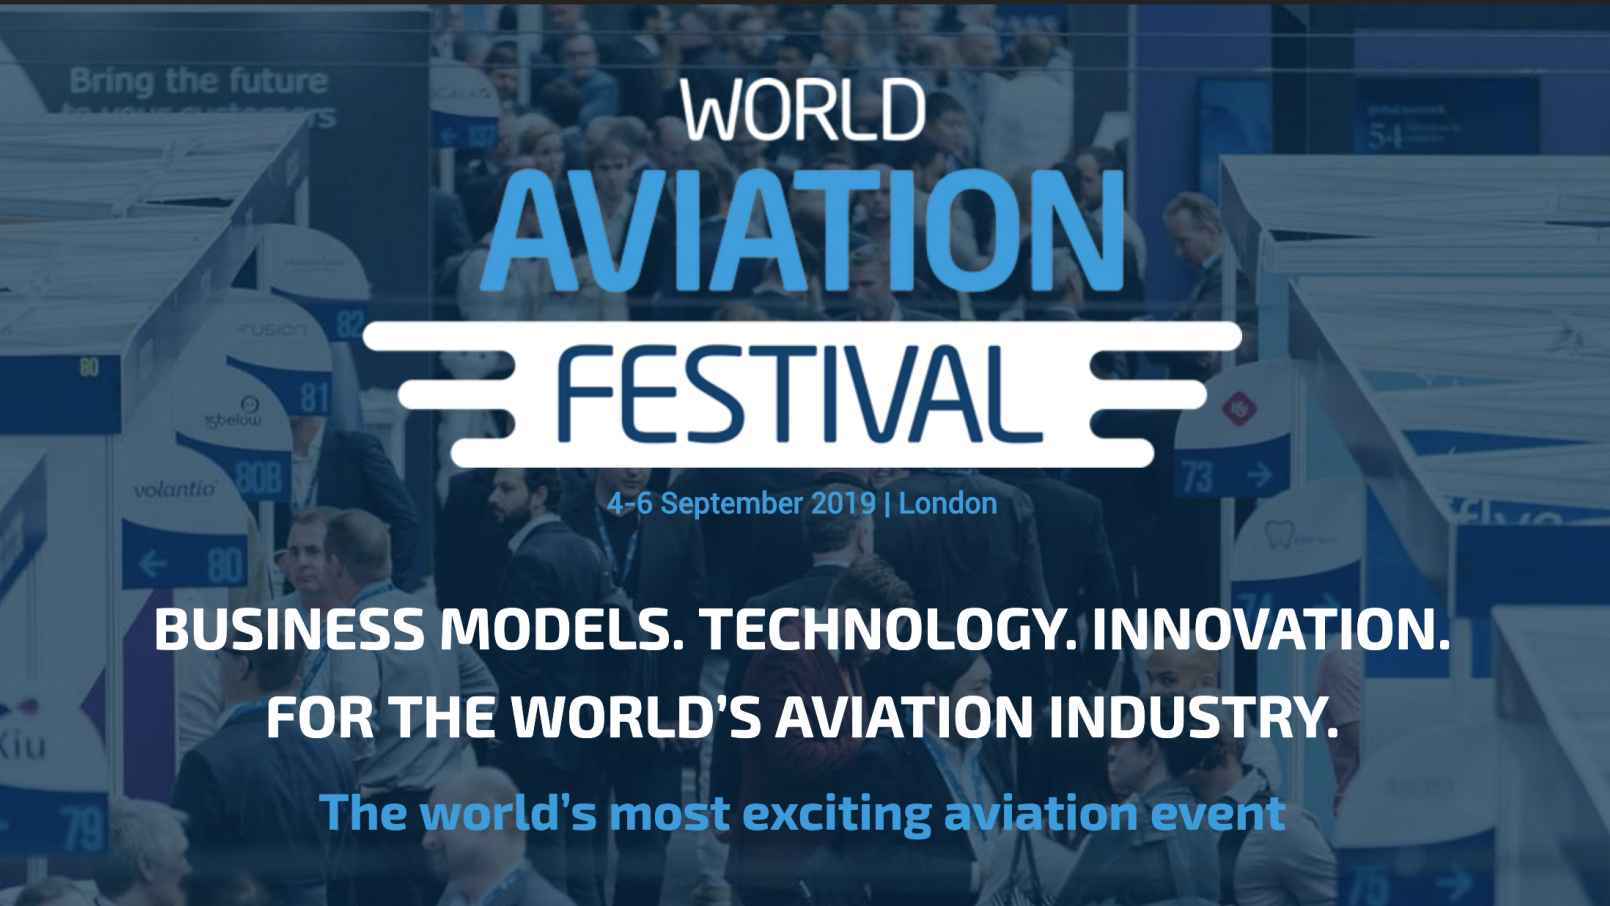 World Aviation Festival | Travel Massive